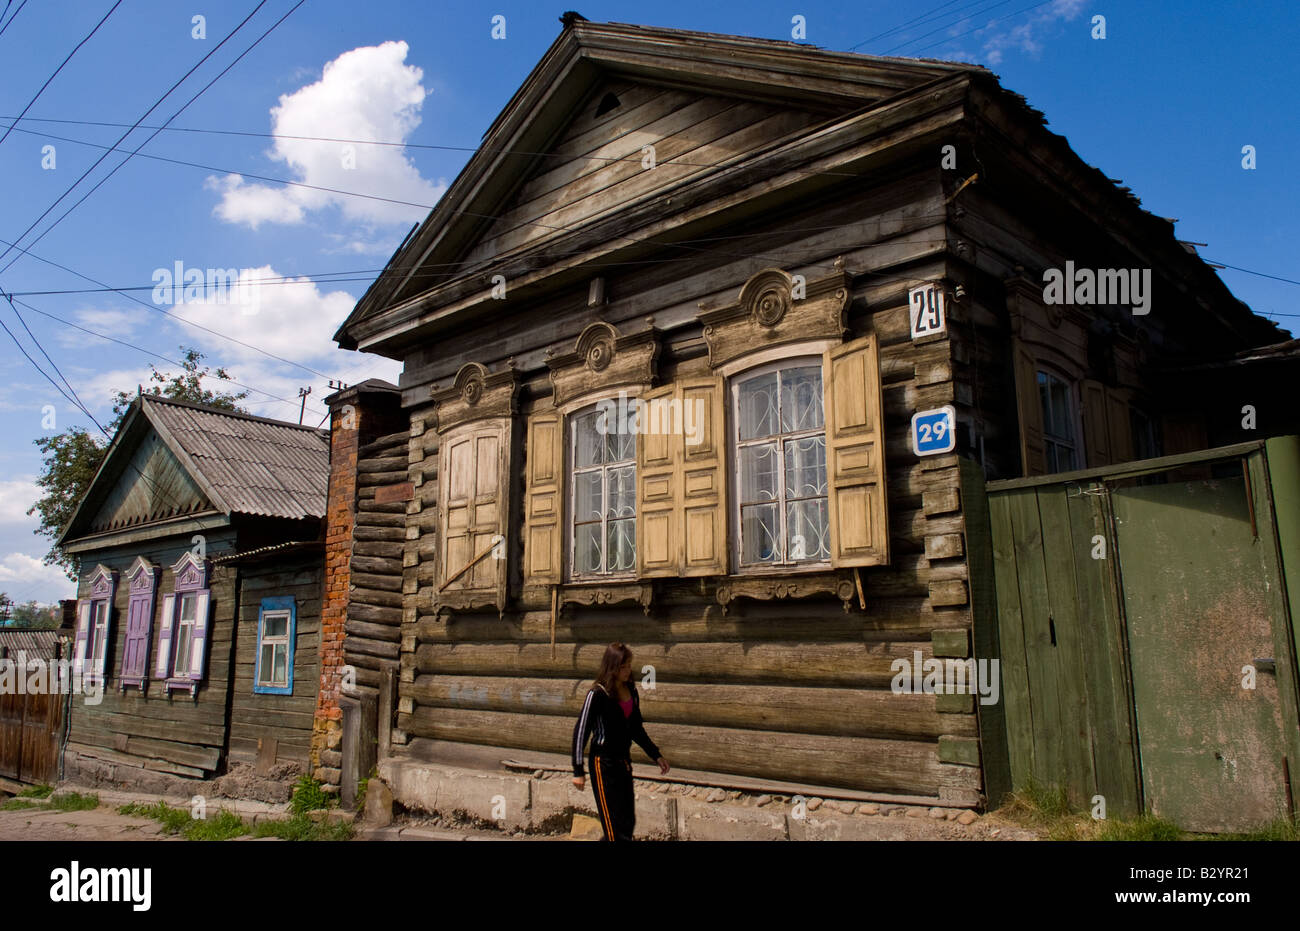 Beautiful old wooden houses with shutters irather worn for Beautiful classic houses